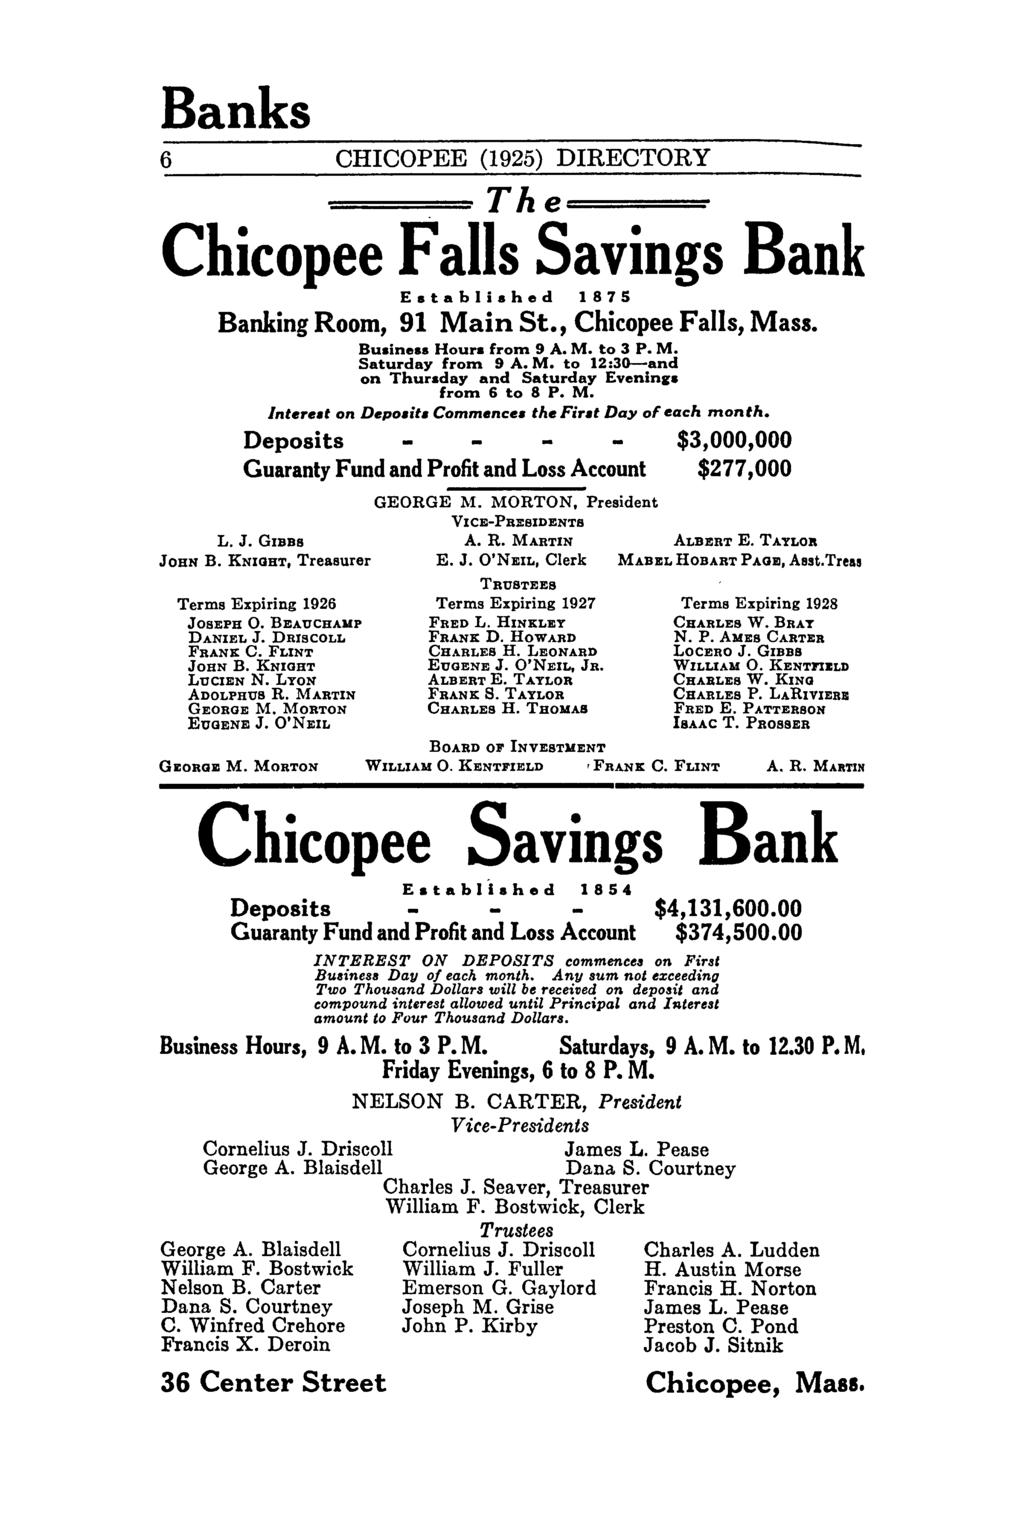 "Banks 6 CHICOPEE (1925) DIRECTORY The===- Chicopee Savings Bank Established 1875 Banking Room, 91 Main St., Chicopee, Mass. Bu.ine.s Hour. from 9 A. M. to 3 P. M. Saturday from 9 A. M. to 12:3G-and on Thursday and Saturday Evenin""."